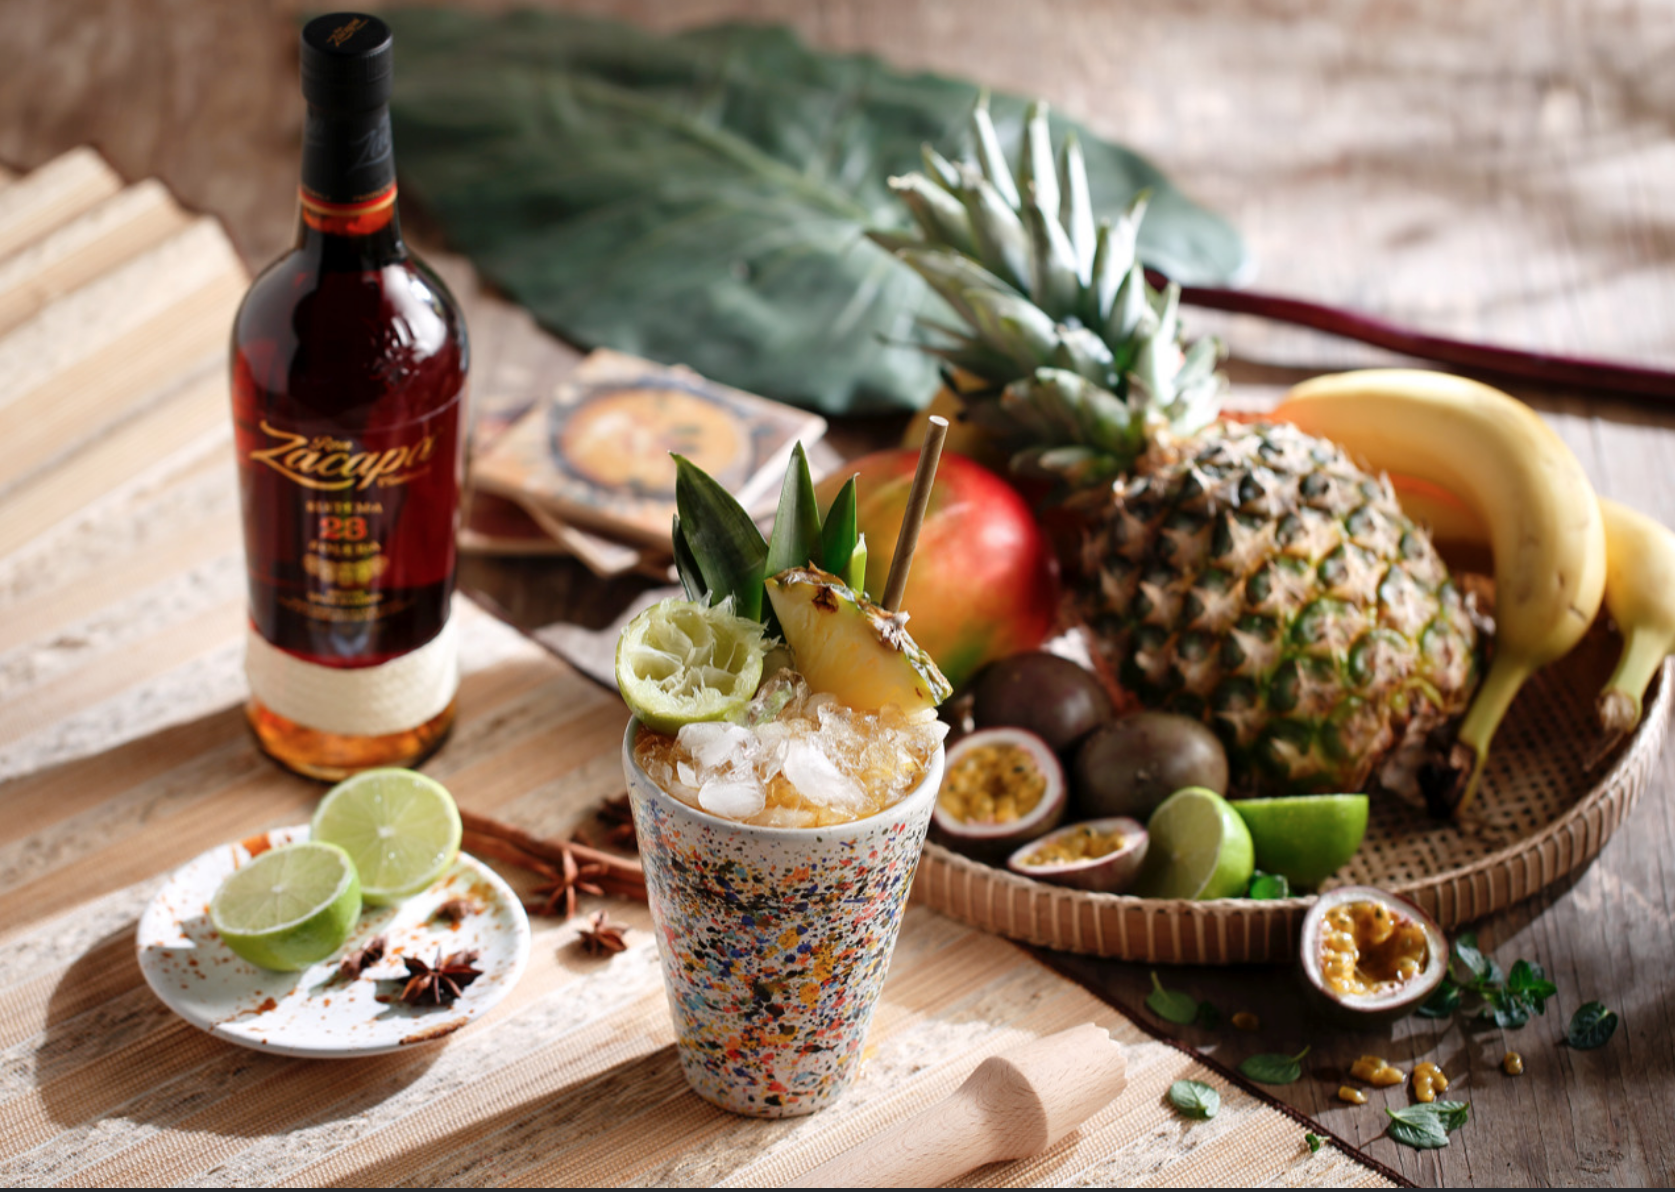 Bar Stories Full Photo Mandarin Oriental Cup with Pineapple and Drink Bottle